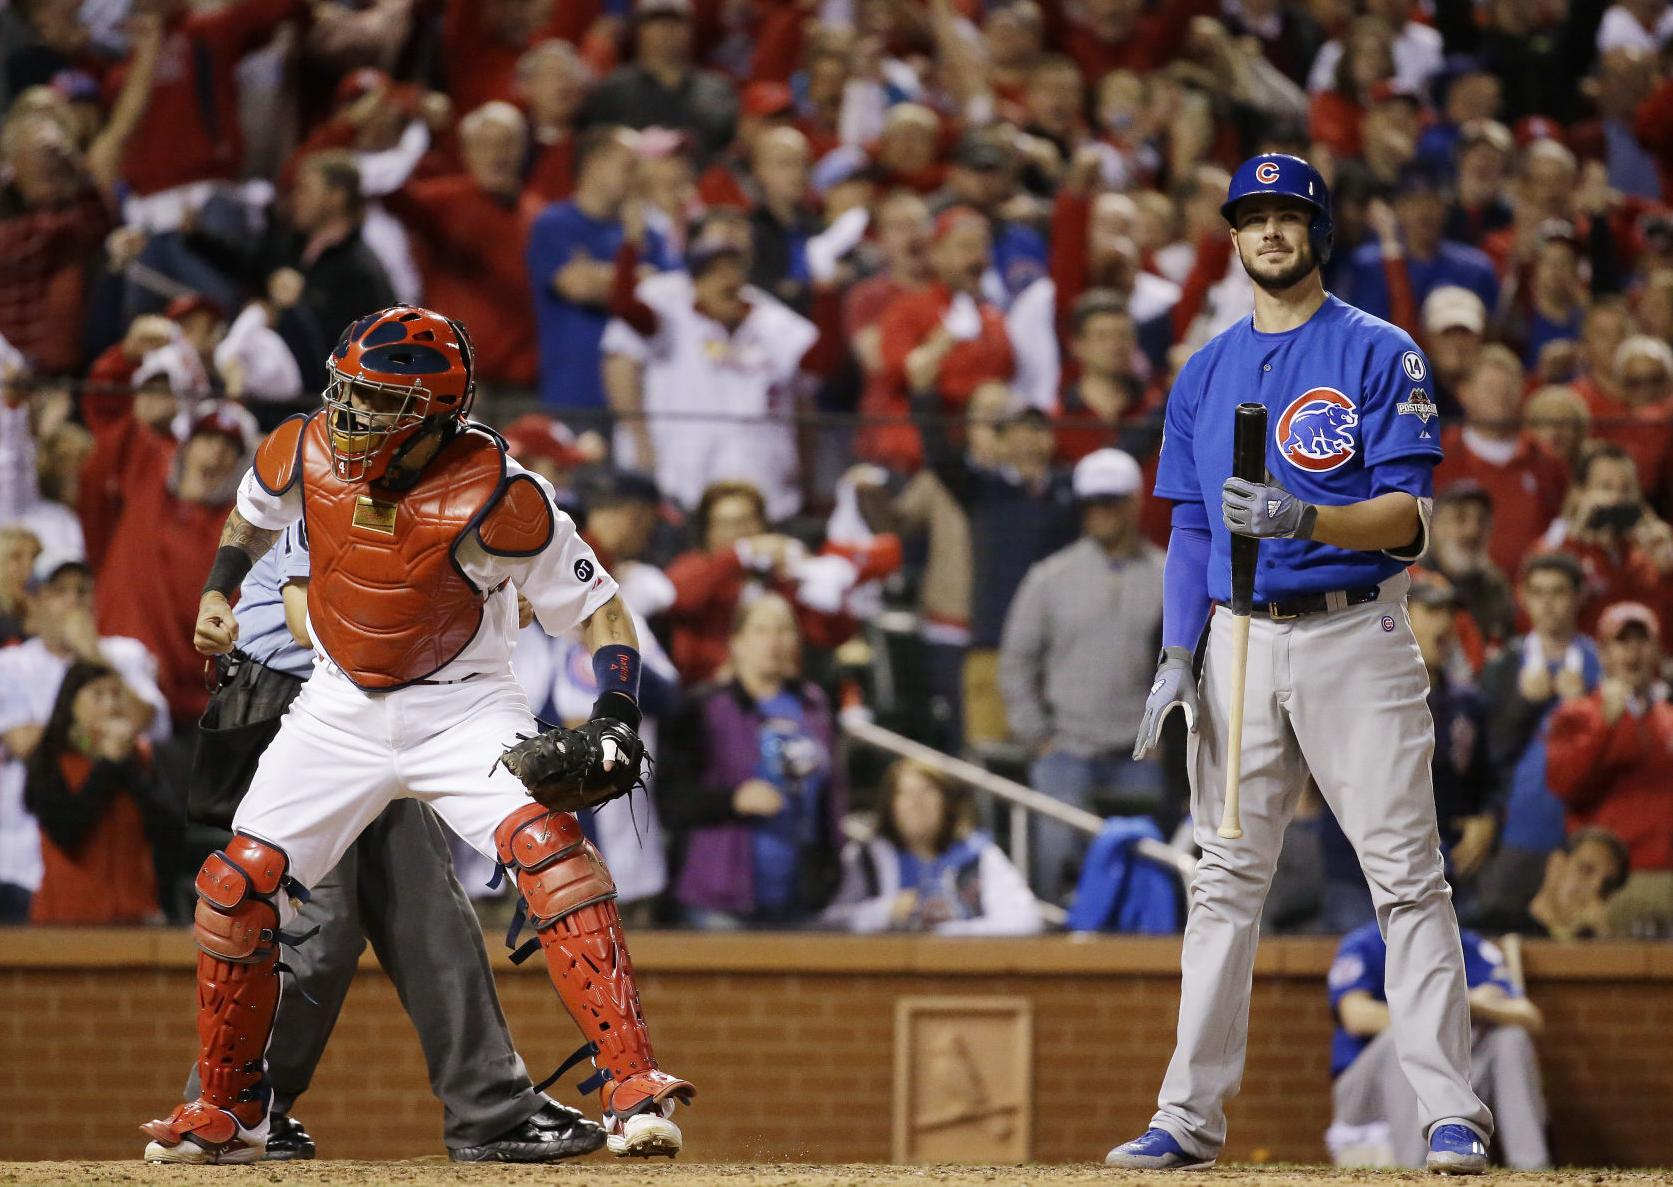 Hochman: Cards-Cubs rivalry gets a winter warm-up as Molina defends St. Louis' honor